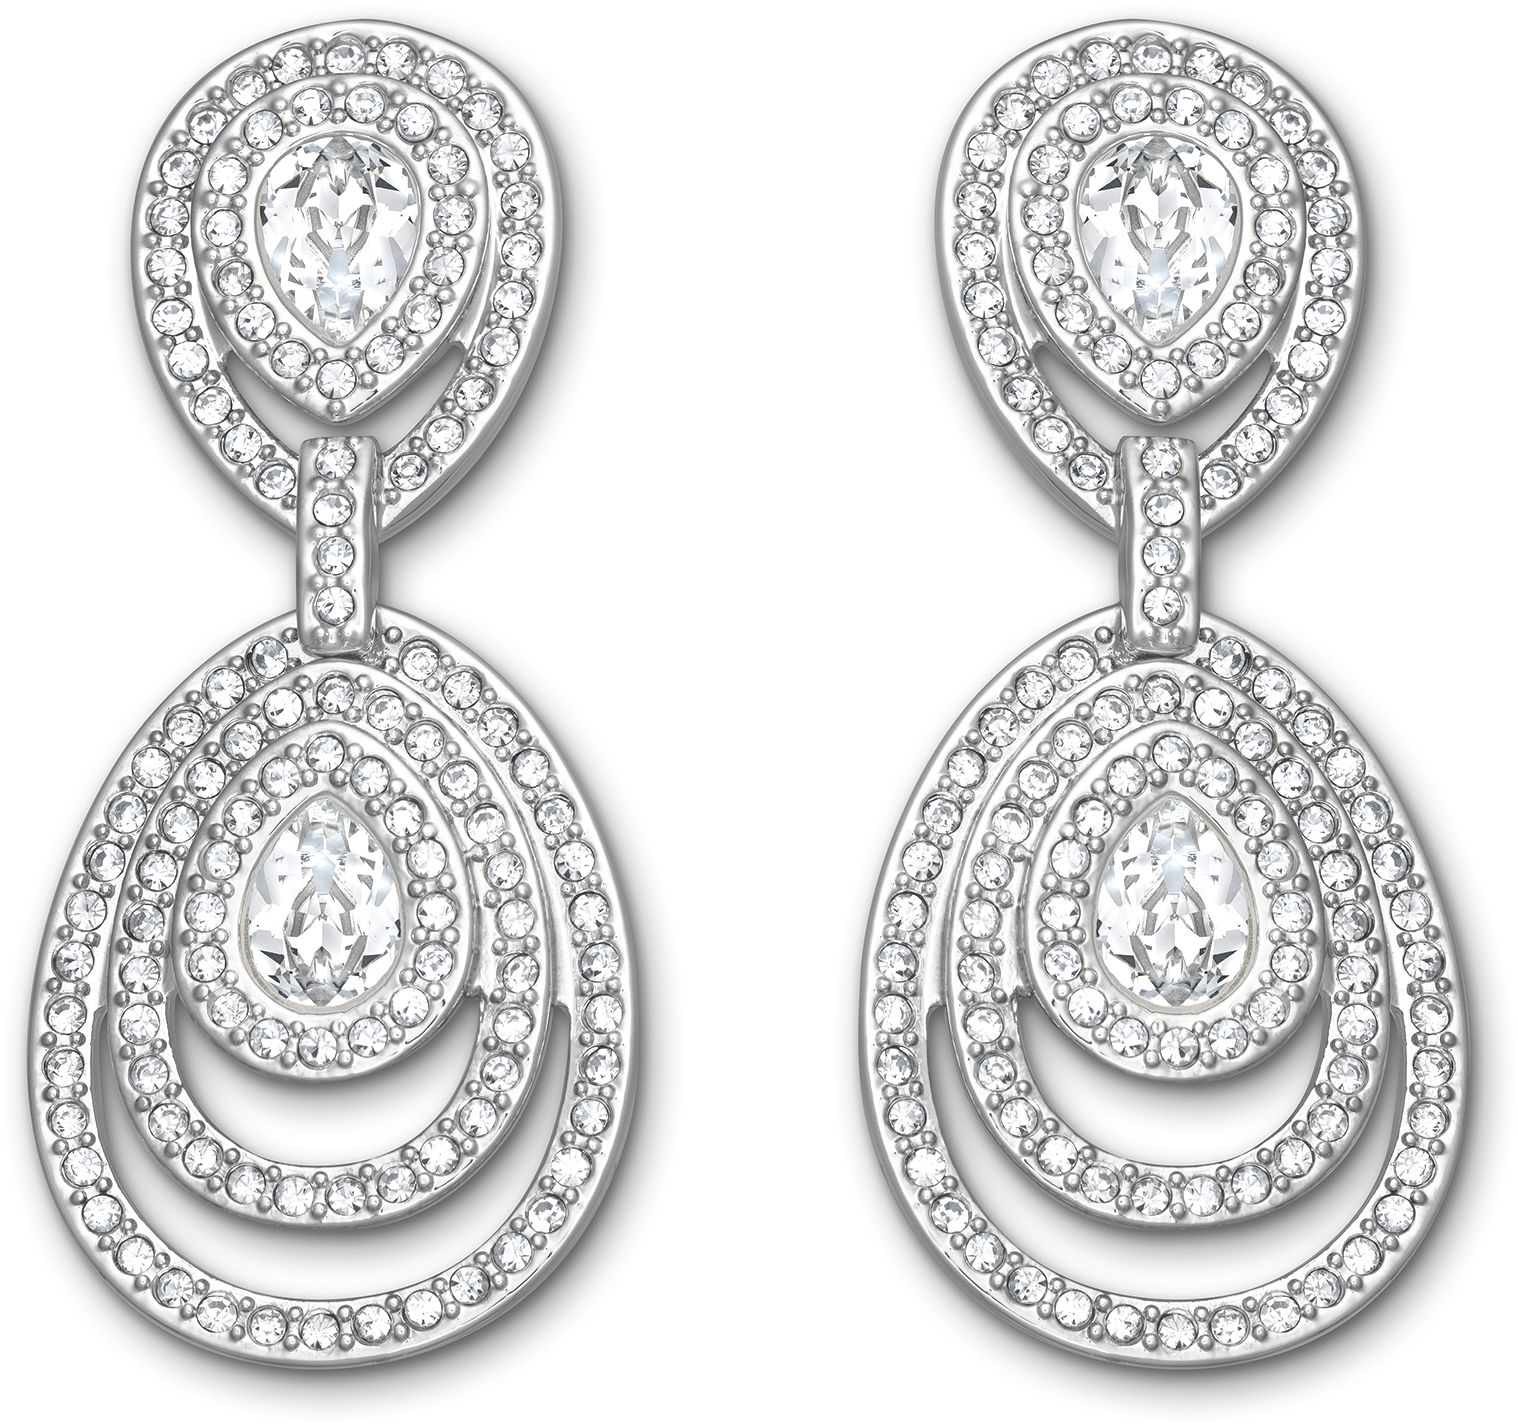 Tizian pierced earrings